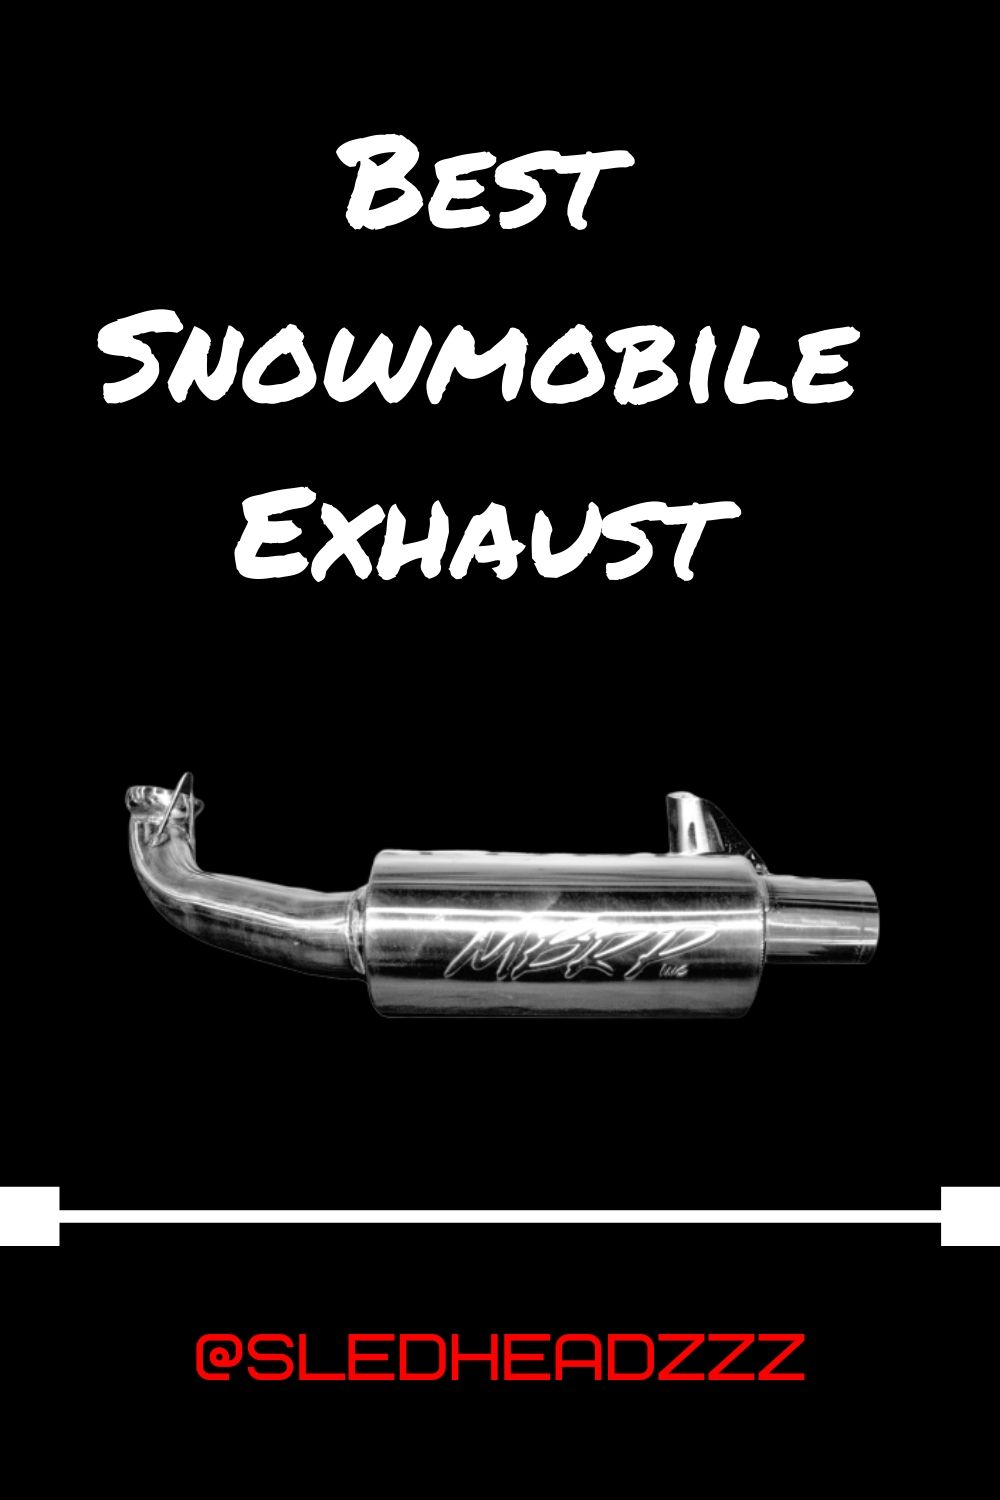 Best Snowmobile Exhausts 2020